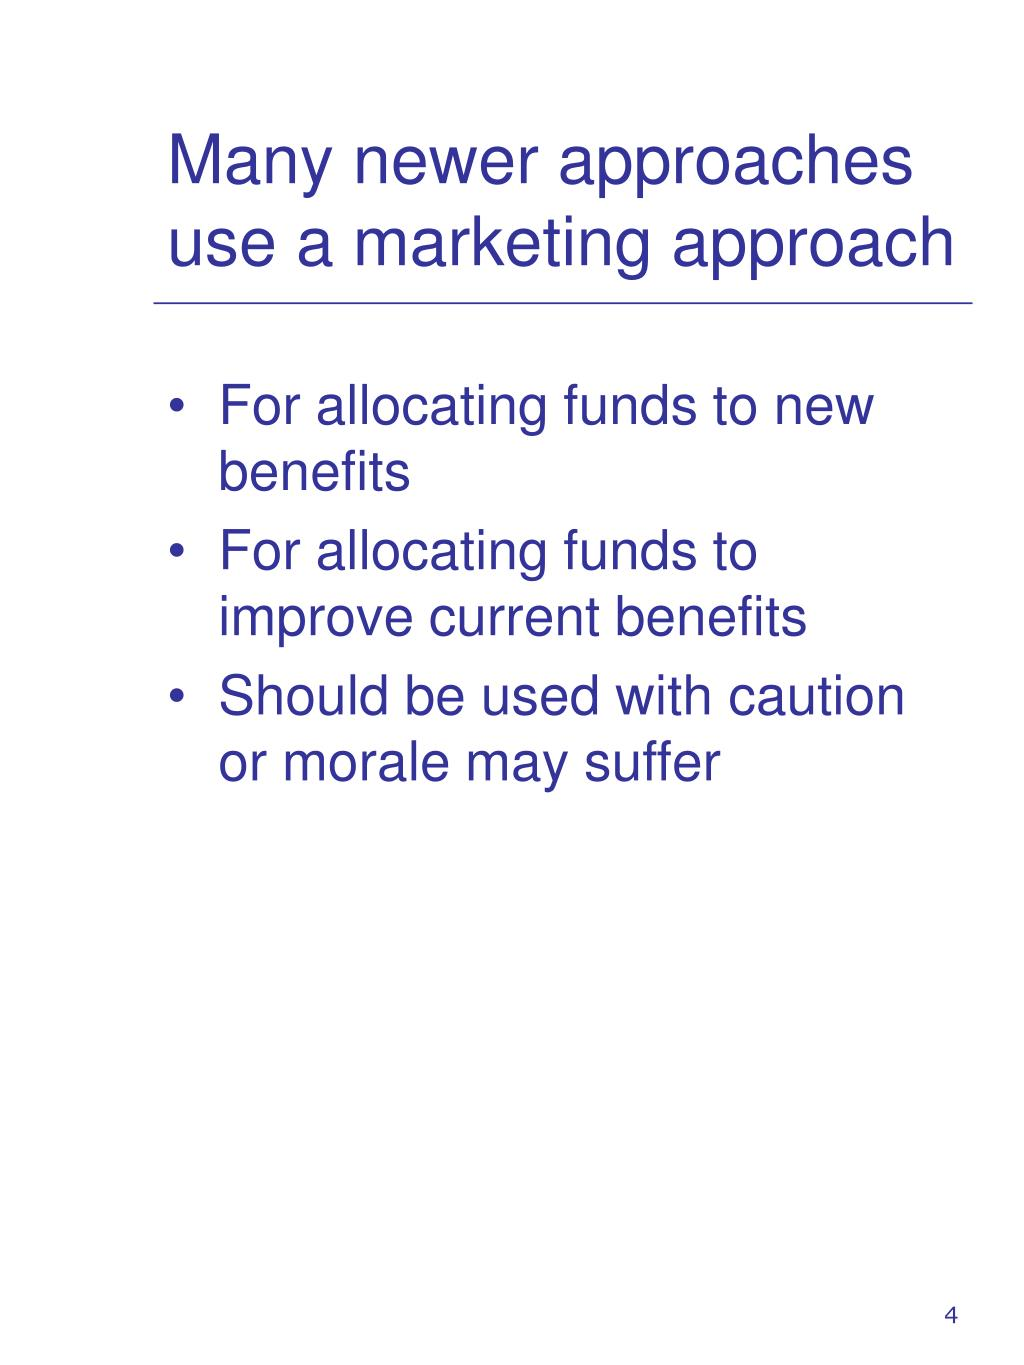 Many newer approaches use a marketing approach